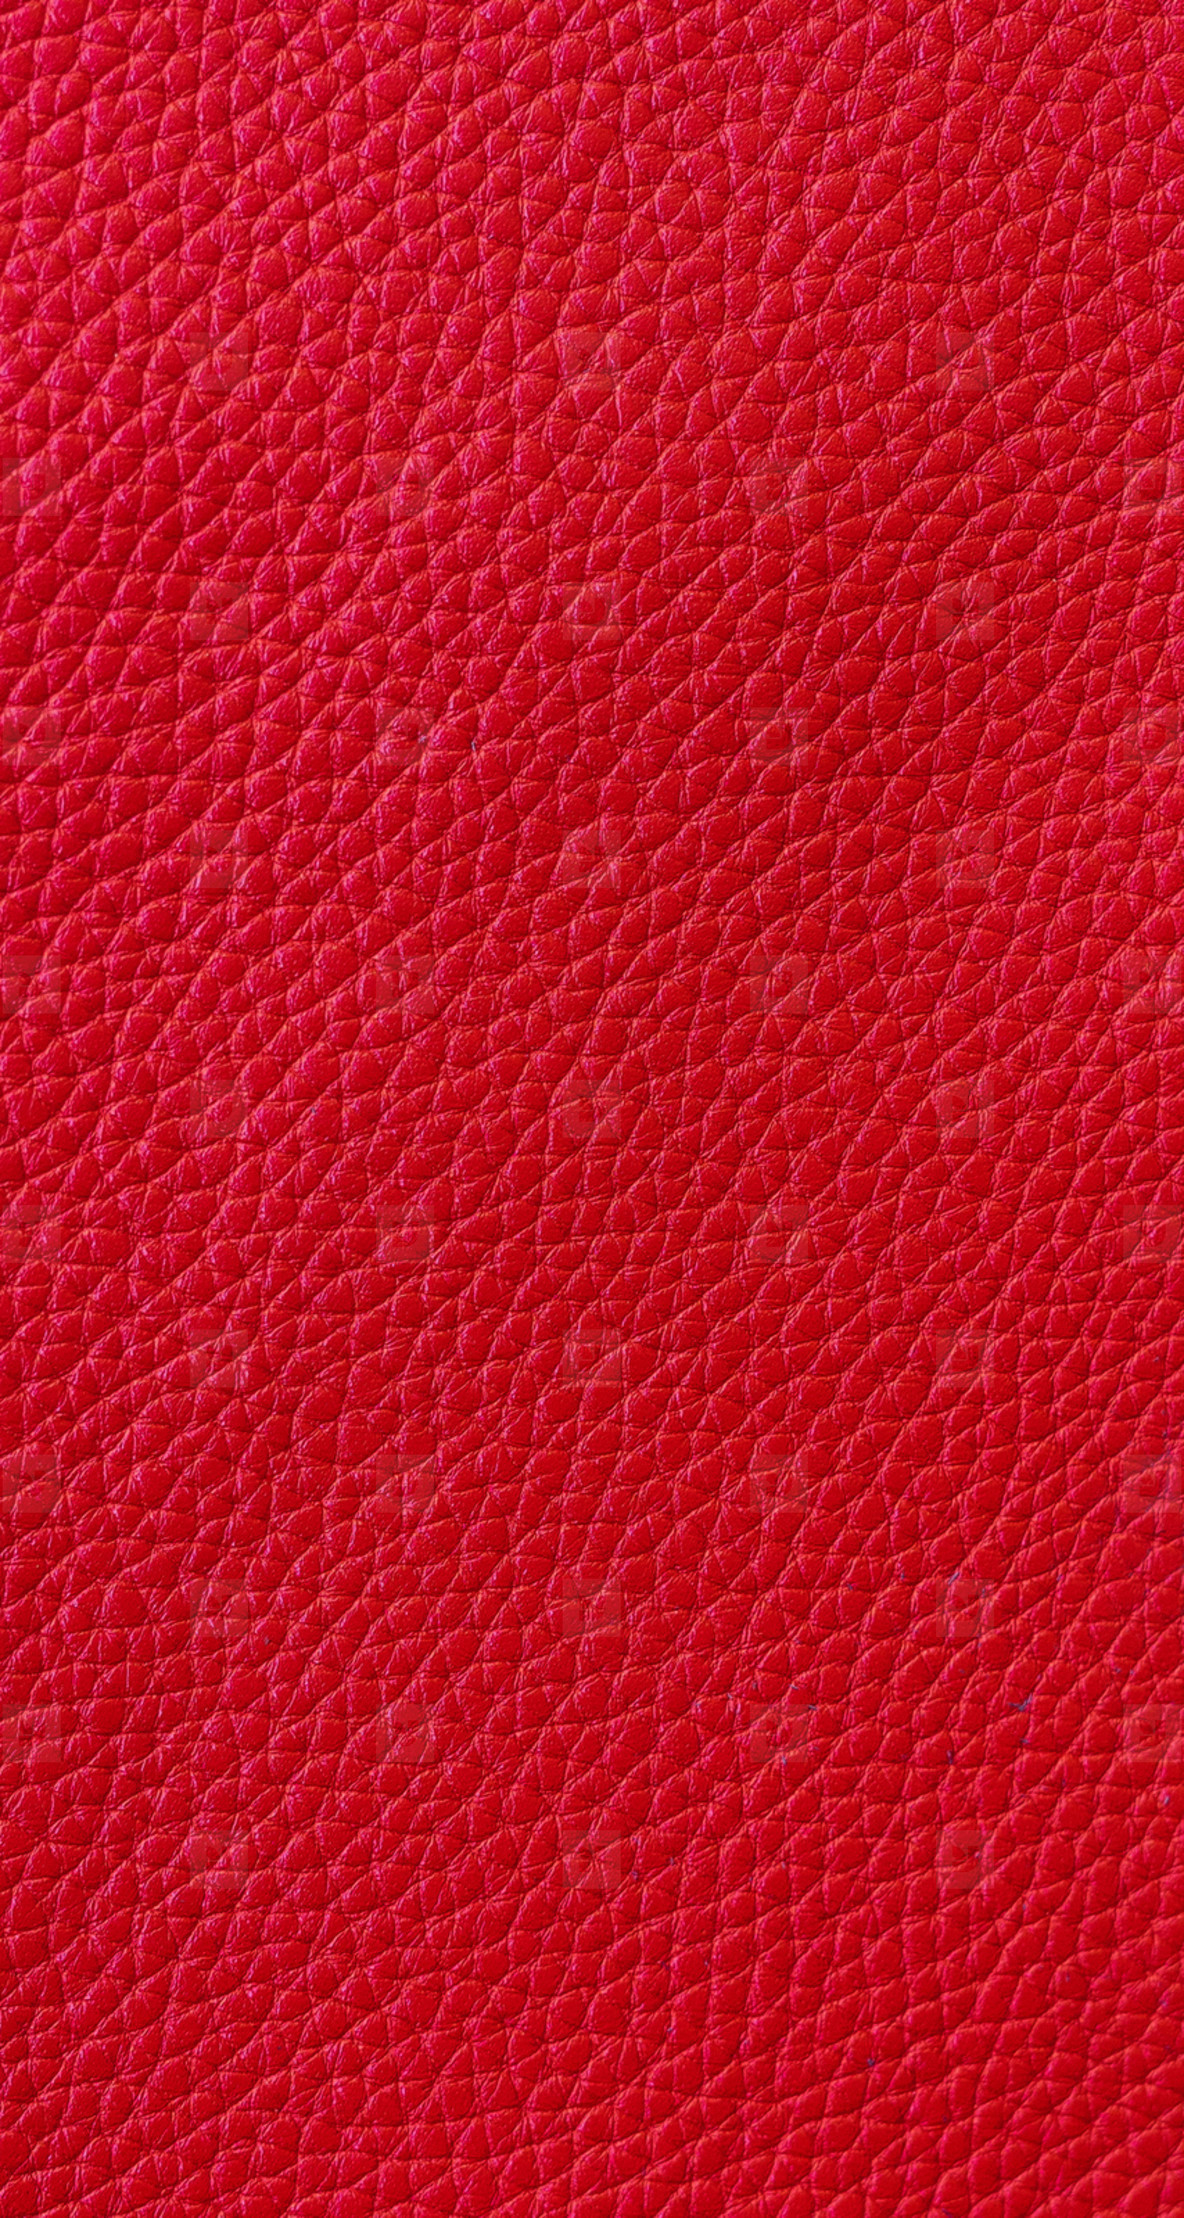 calf skin texture in red color